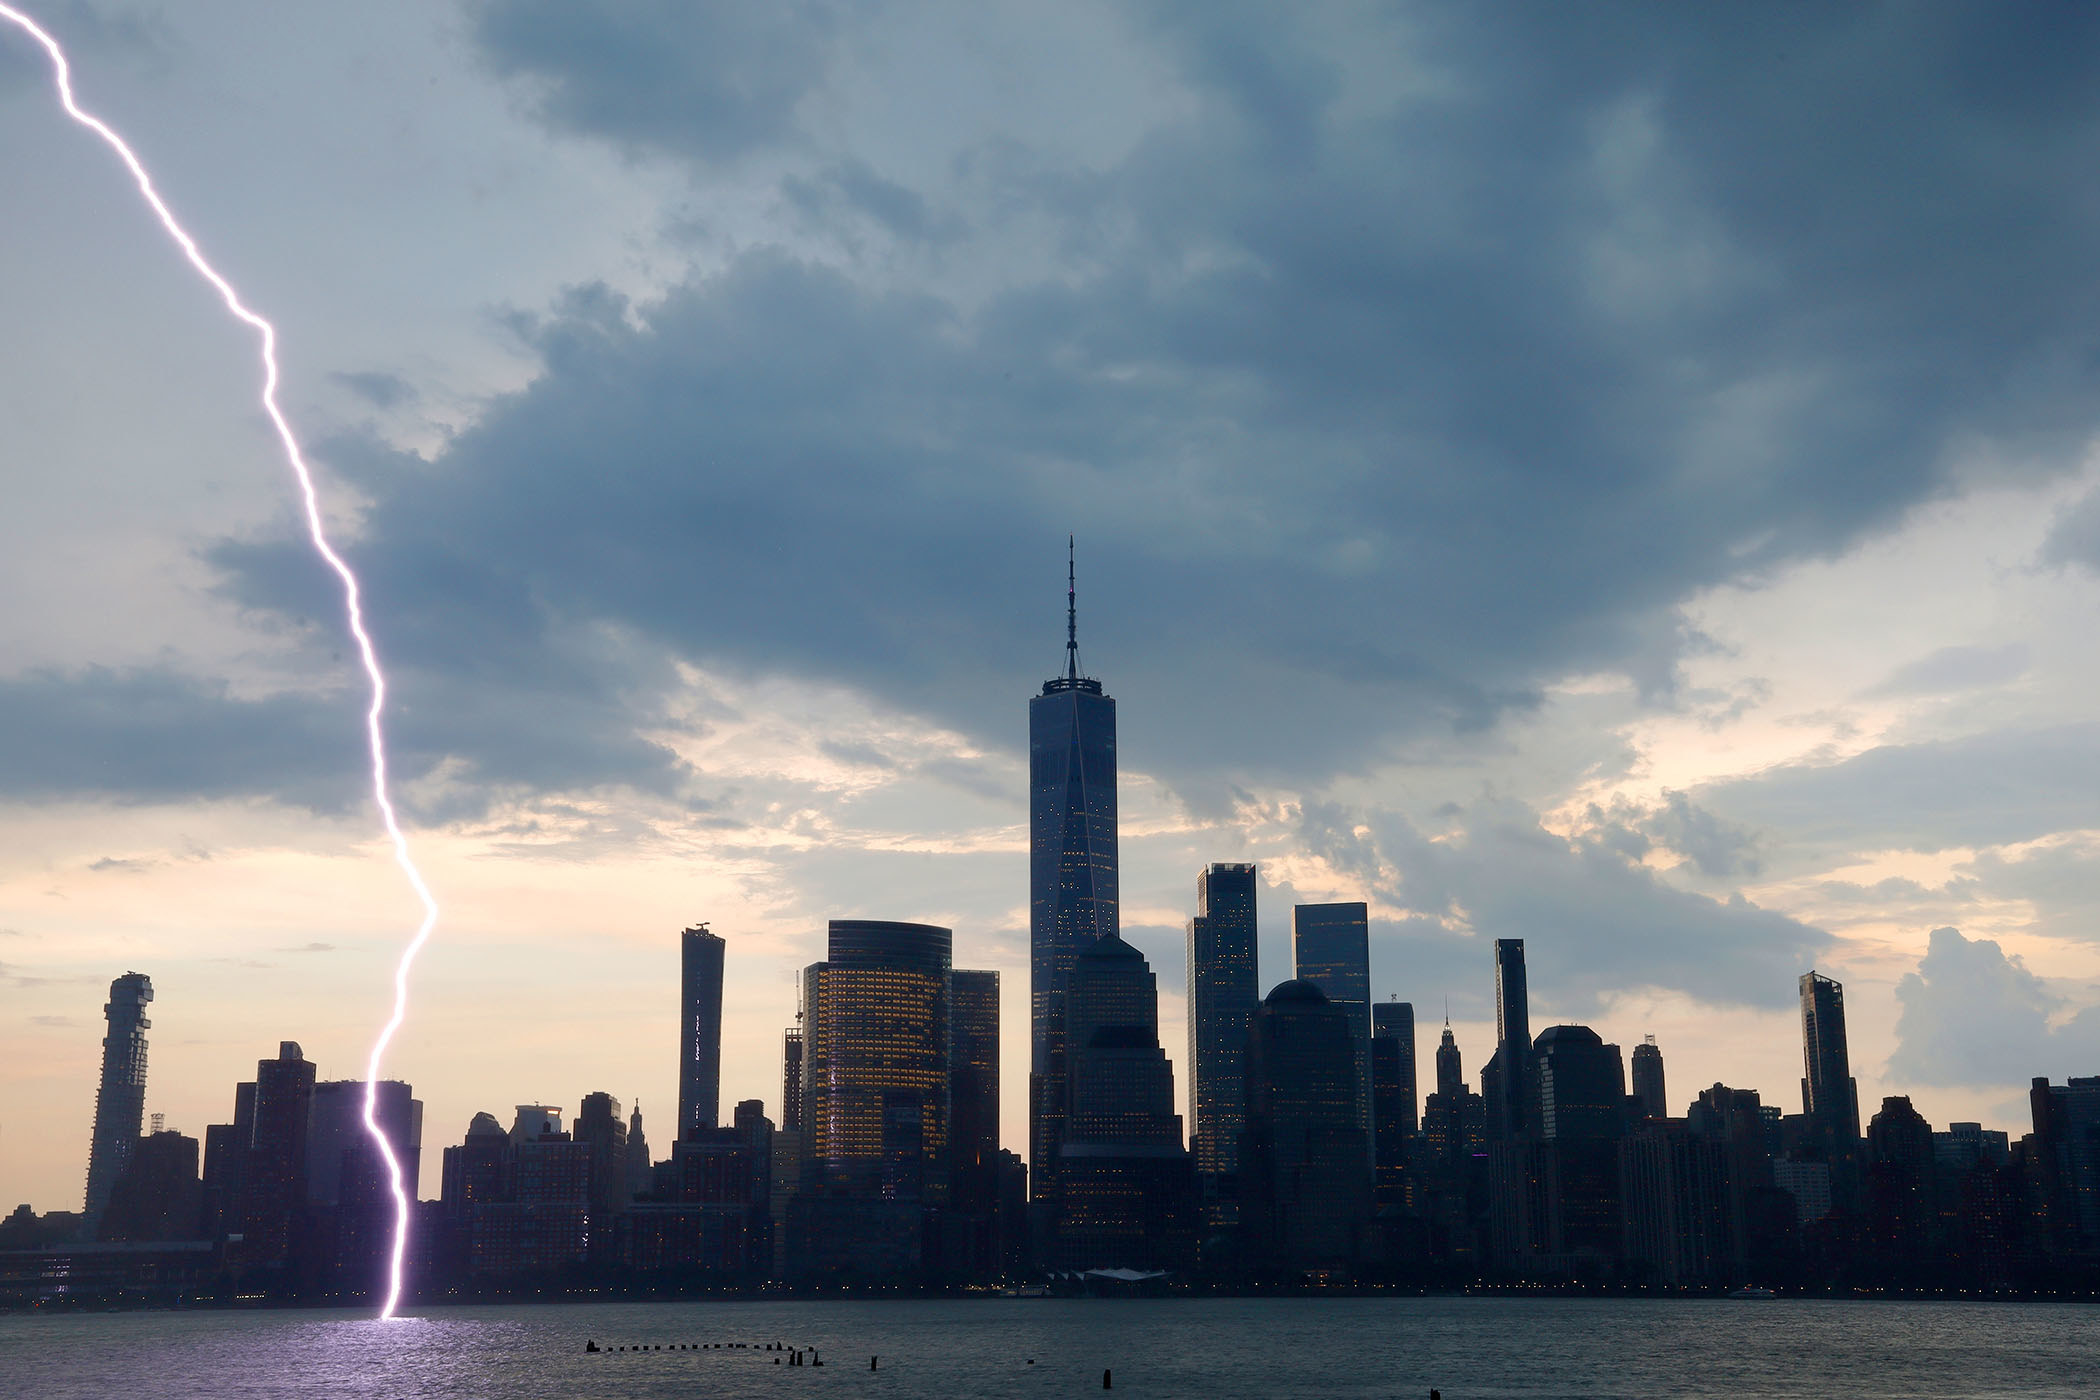 Lightning strikes the Hudson River; the skyline of buildings in New York's Financial District stands in the background